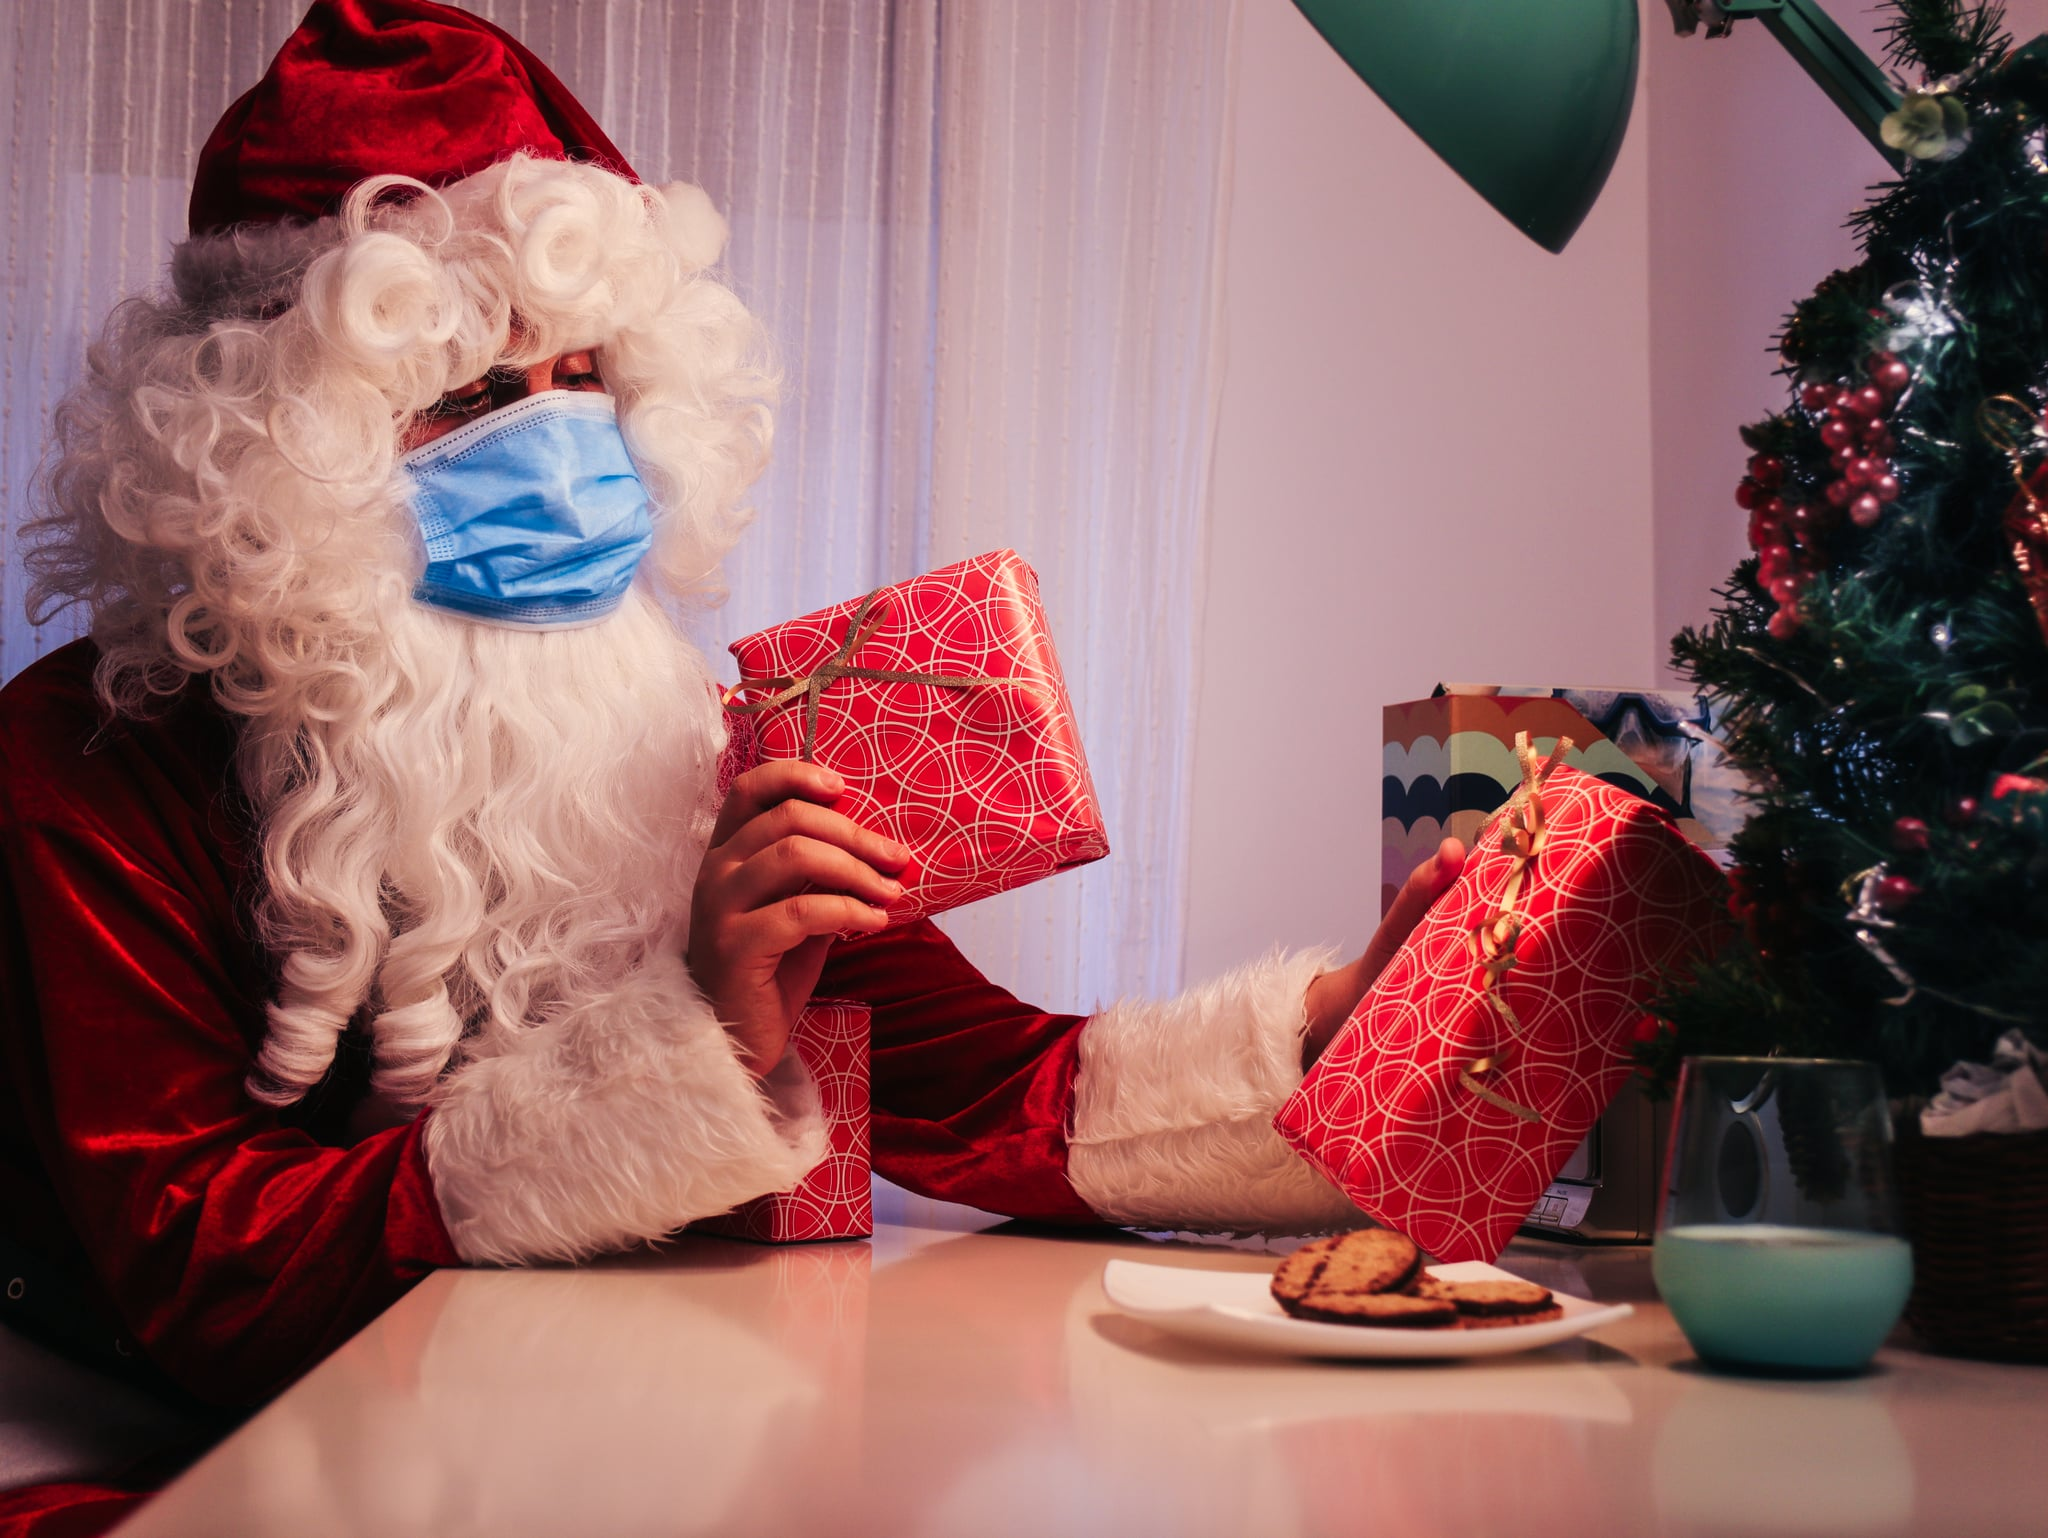 santa claus inside a house with a blue face mask, a glass of milk and cookies putting gifts on christmas tree